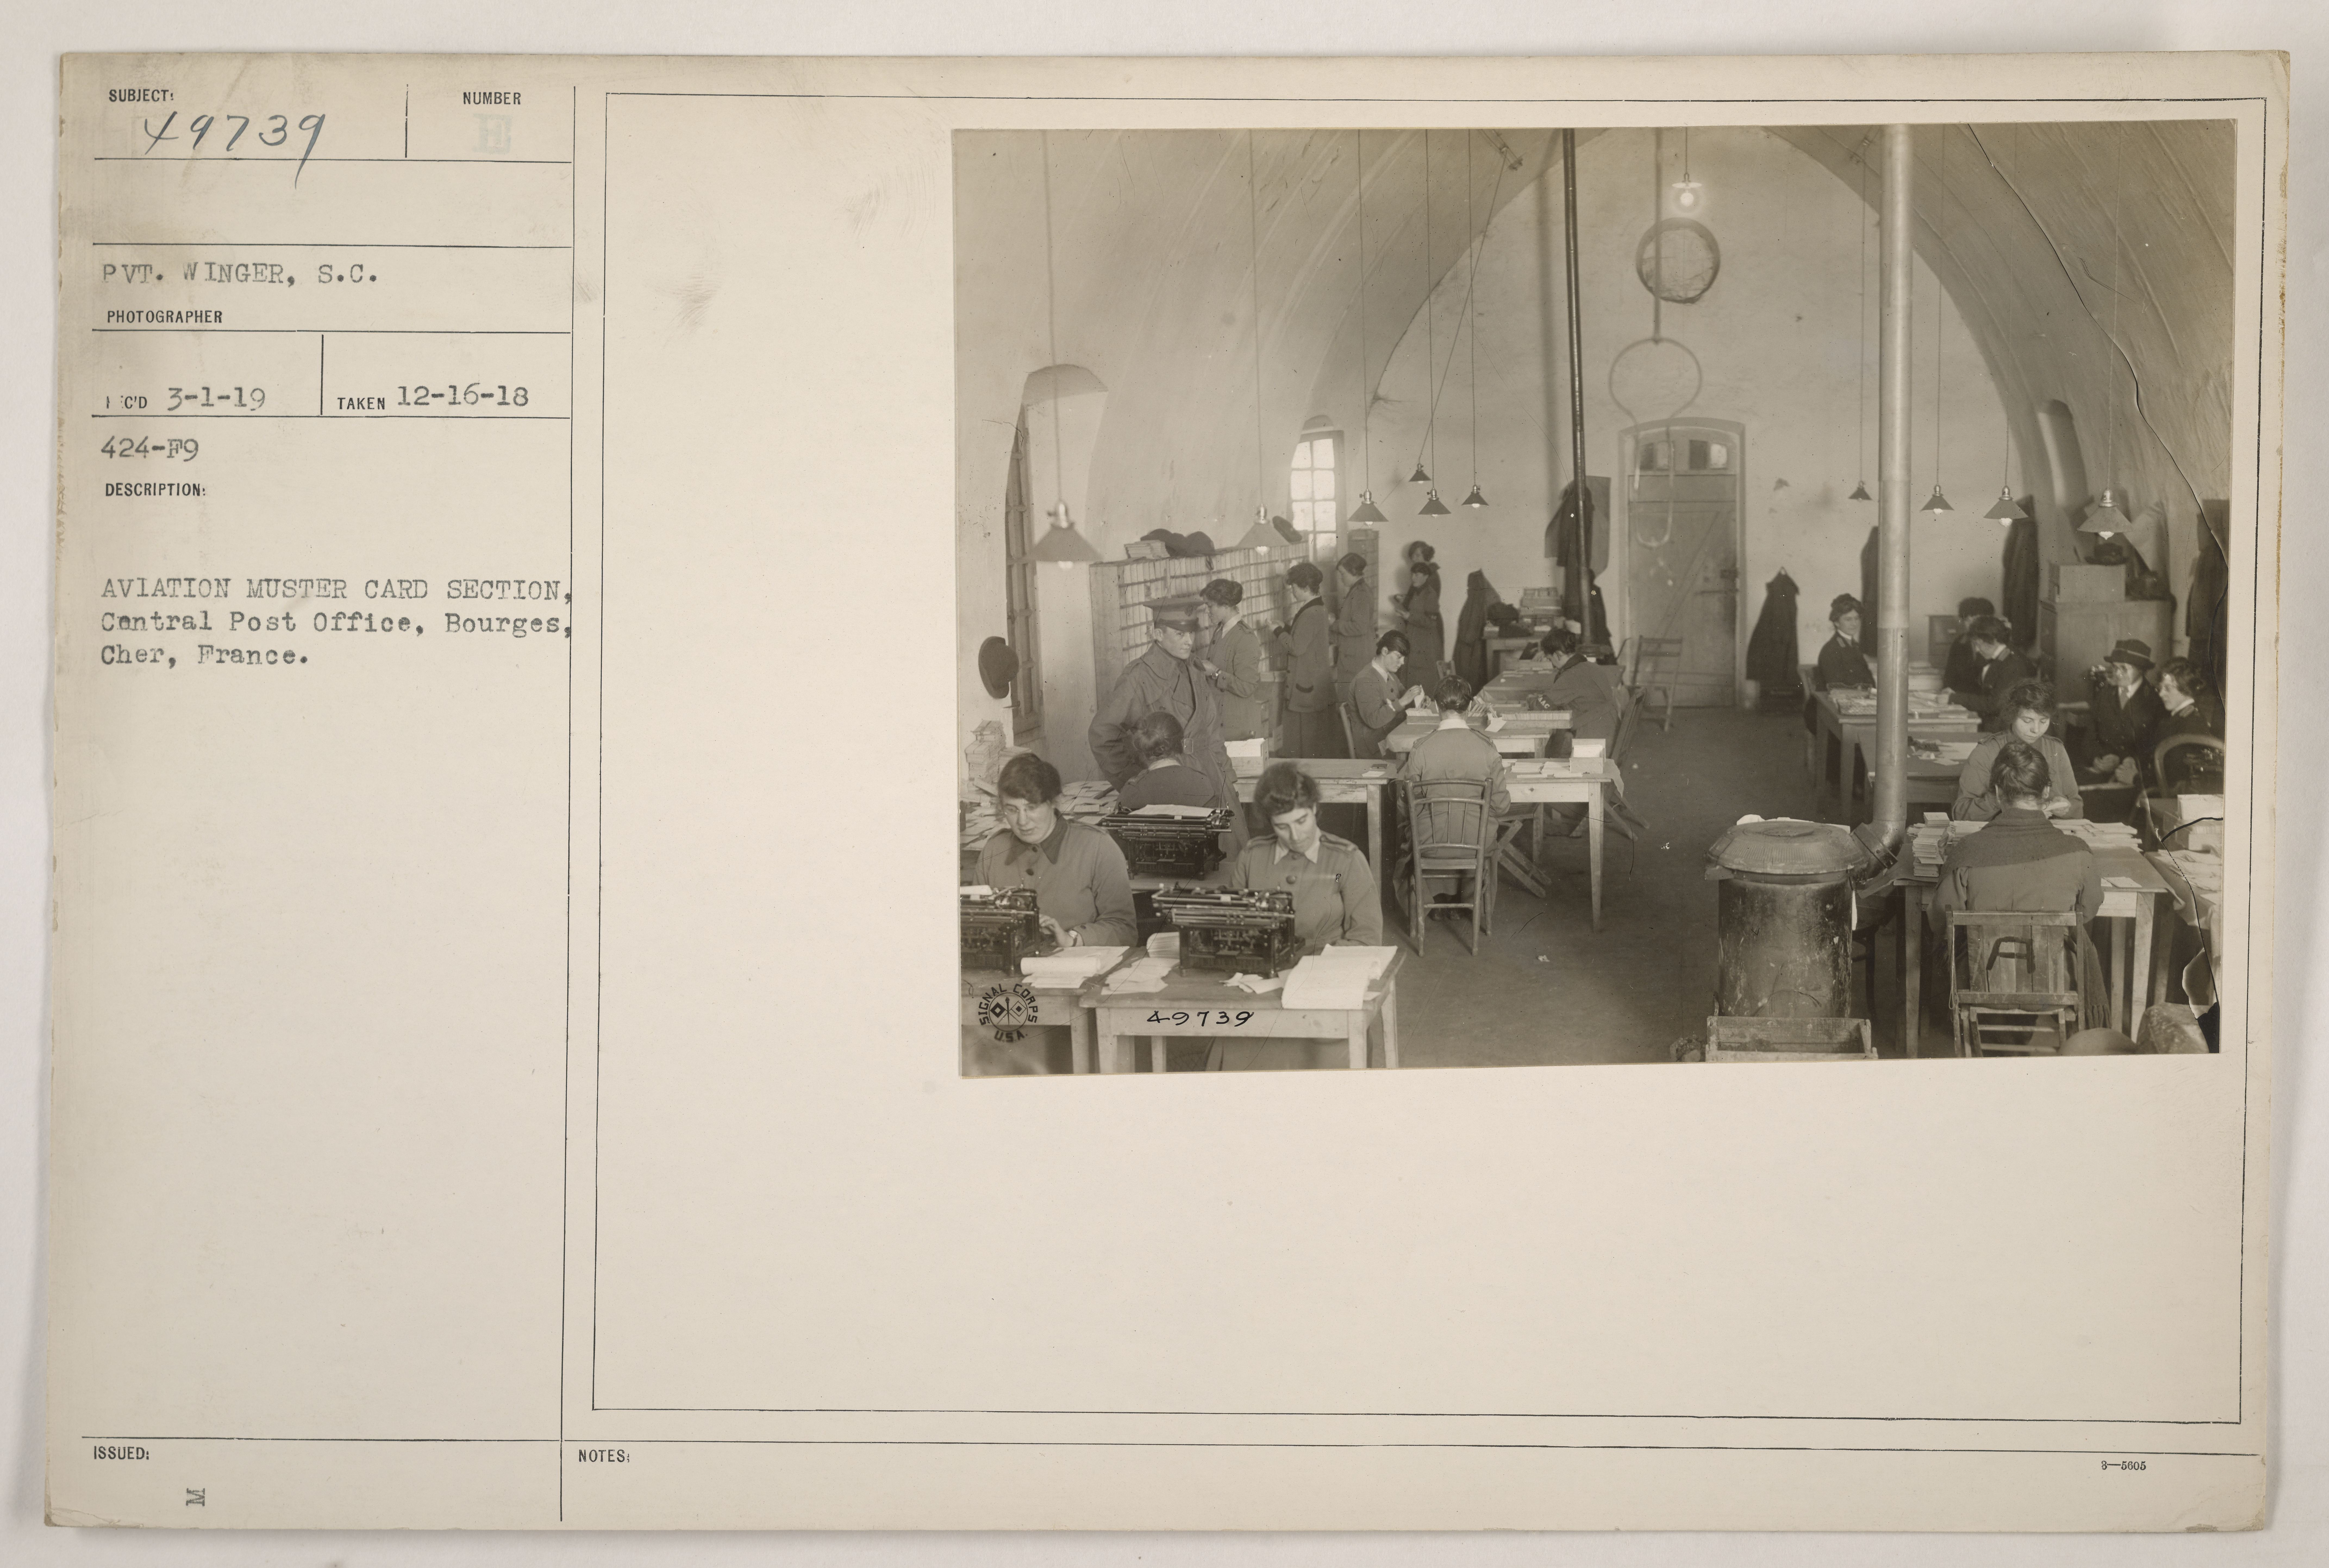 Aviation muster card section, Central Post Office, Bourges, Cher, France